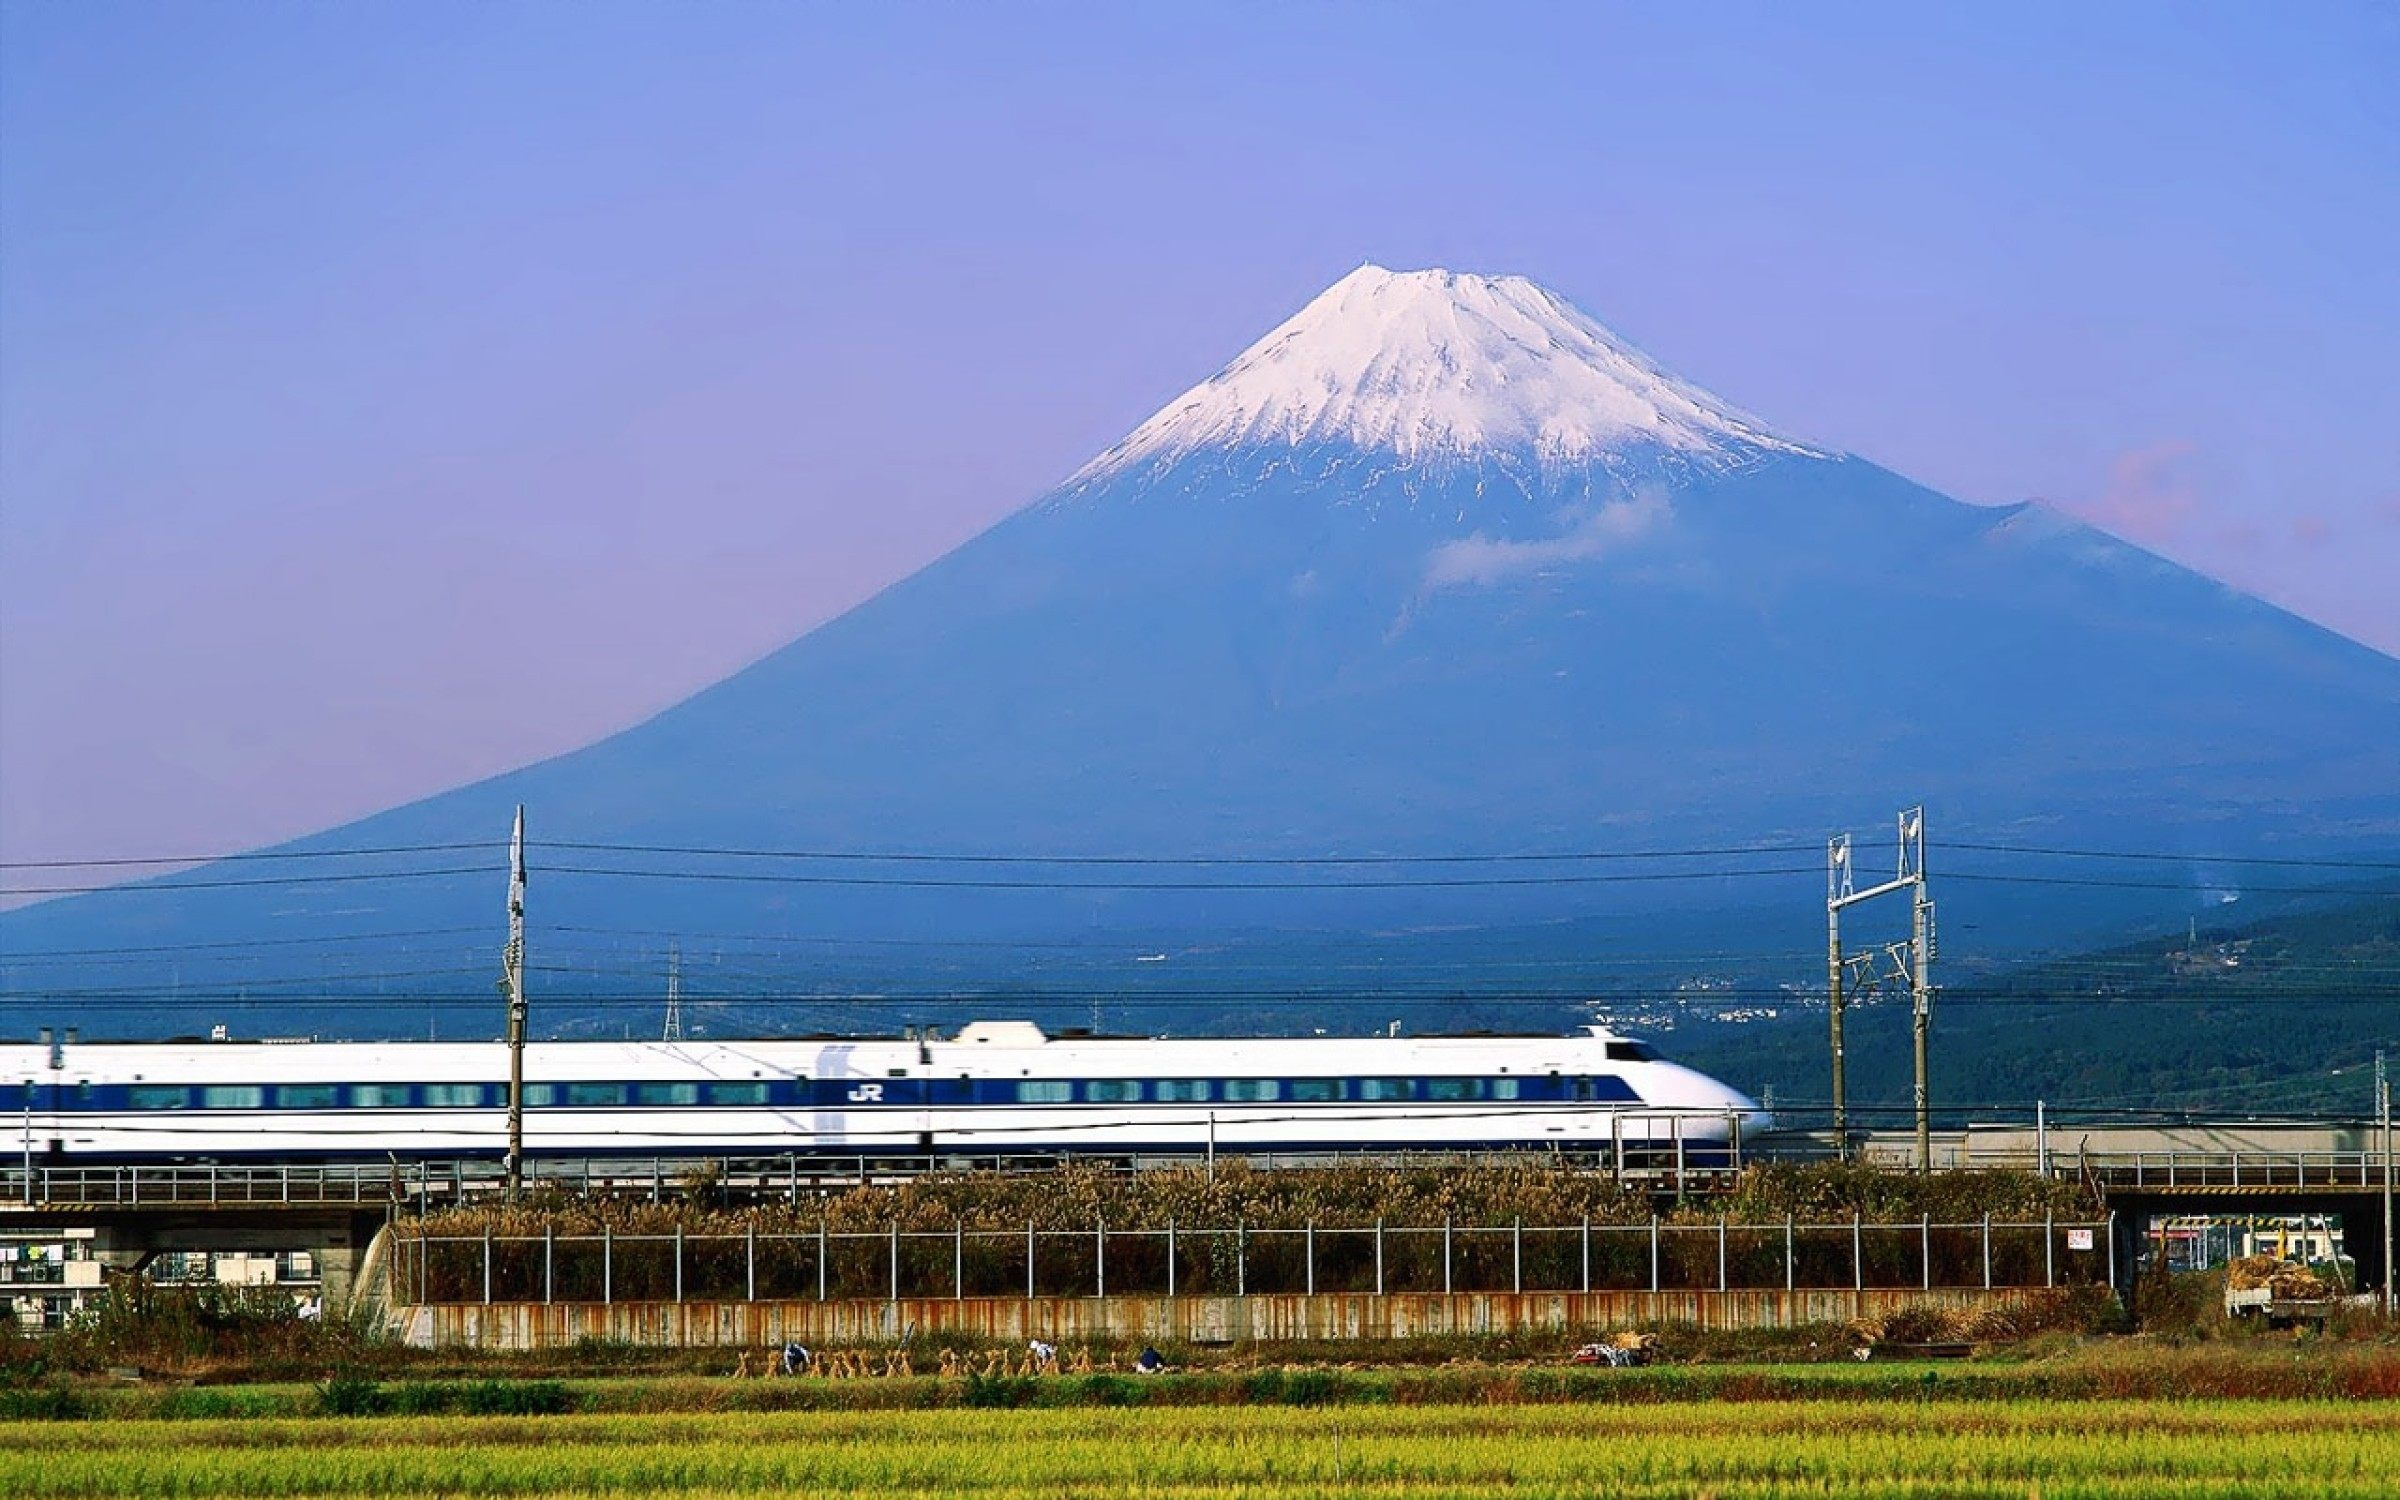 Two icons of modern Japan: the bullet train and Mount Fuji